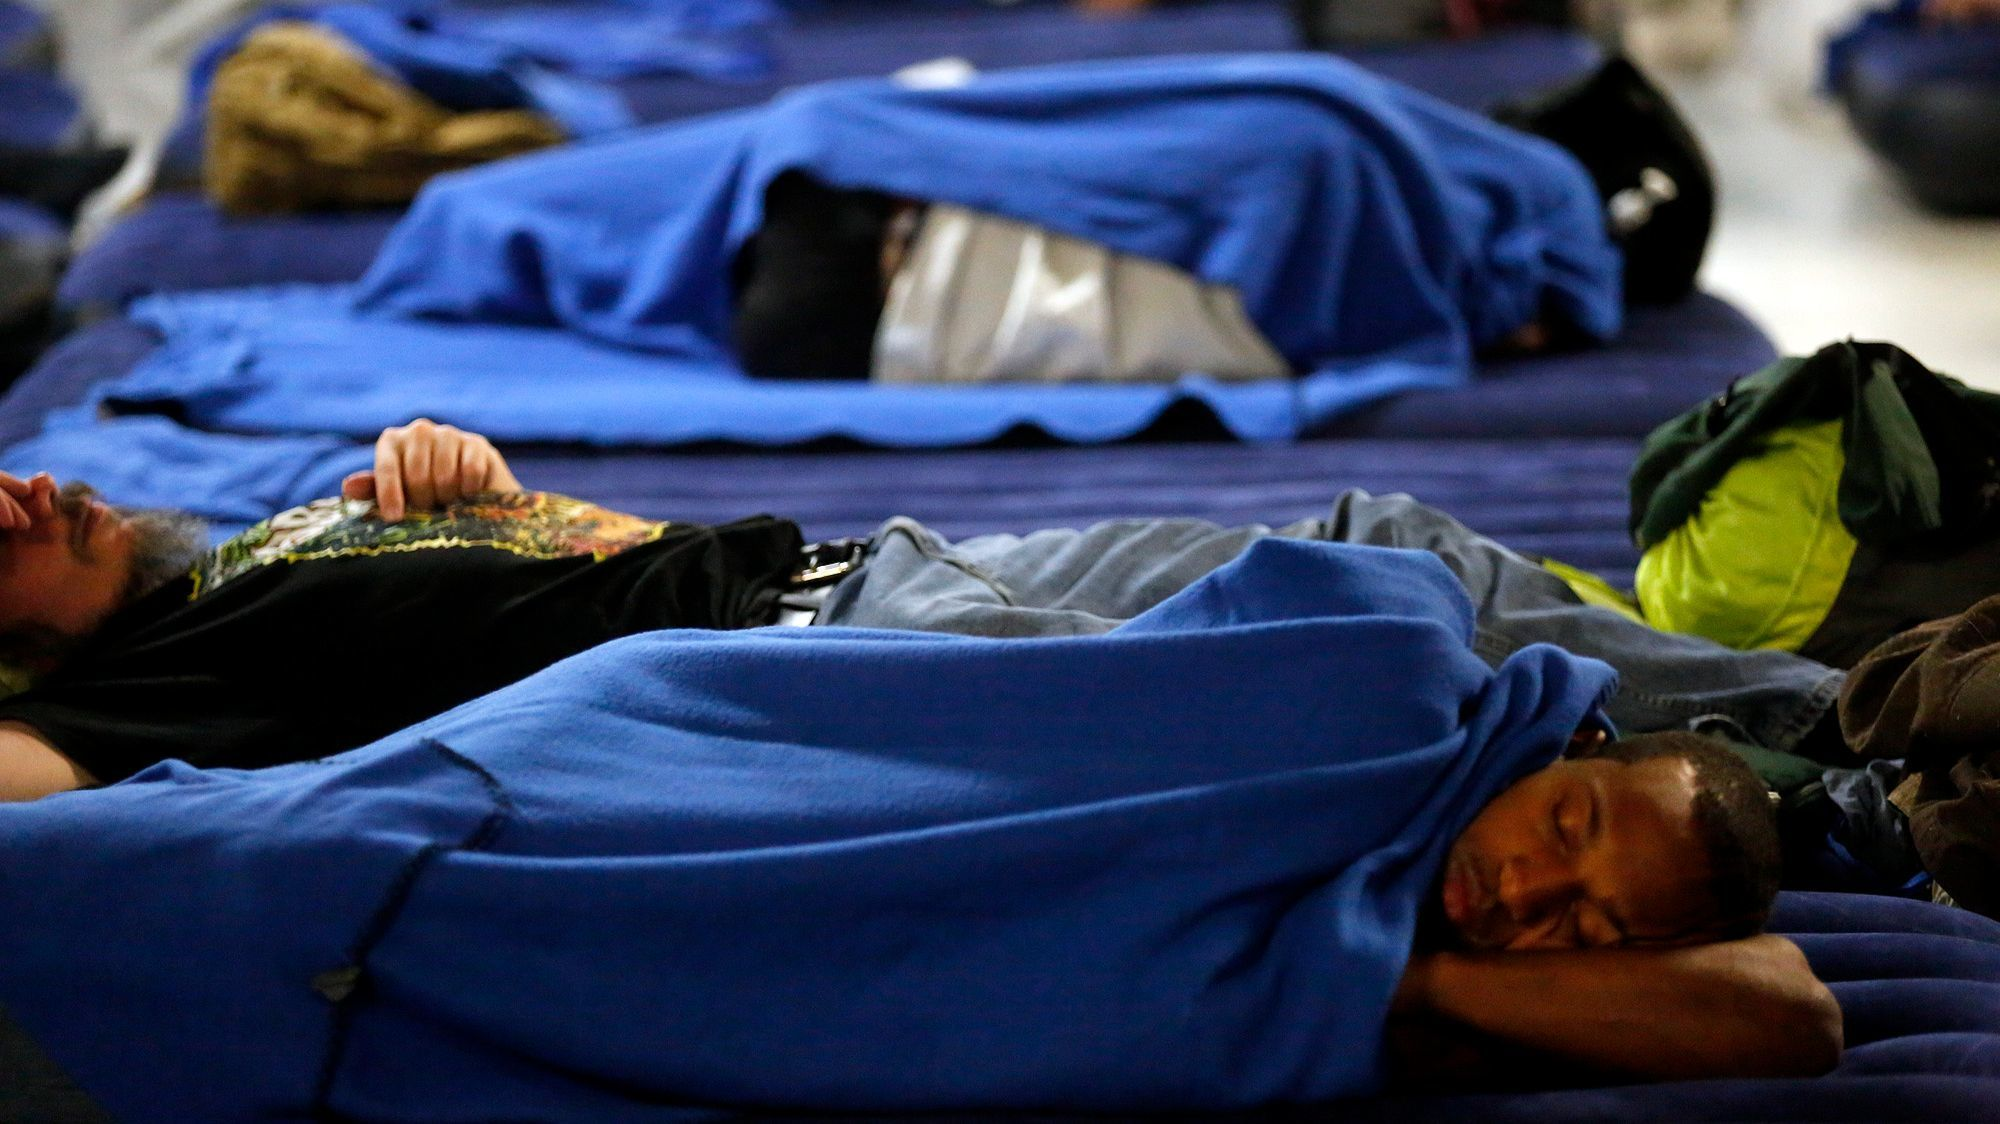 Men sleep on air mattresses in the overcrowded Union Rescue Mission.